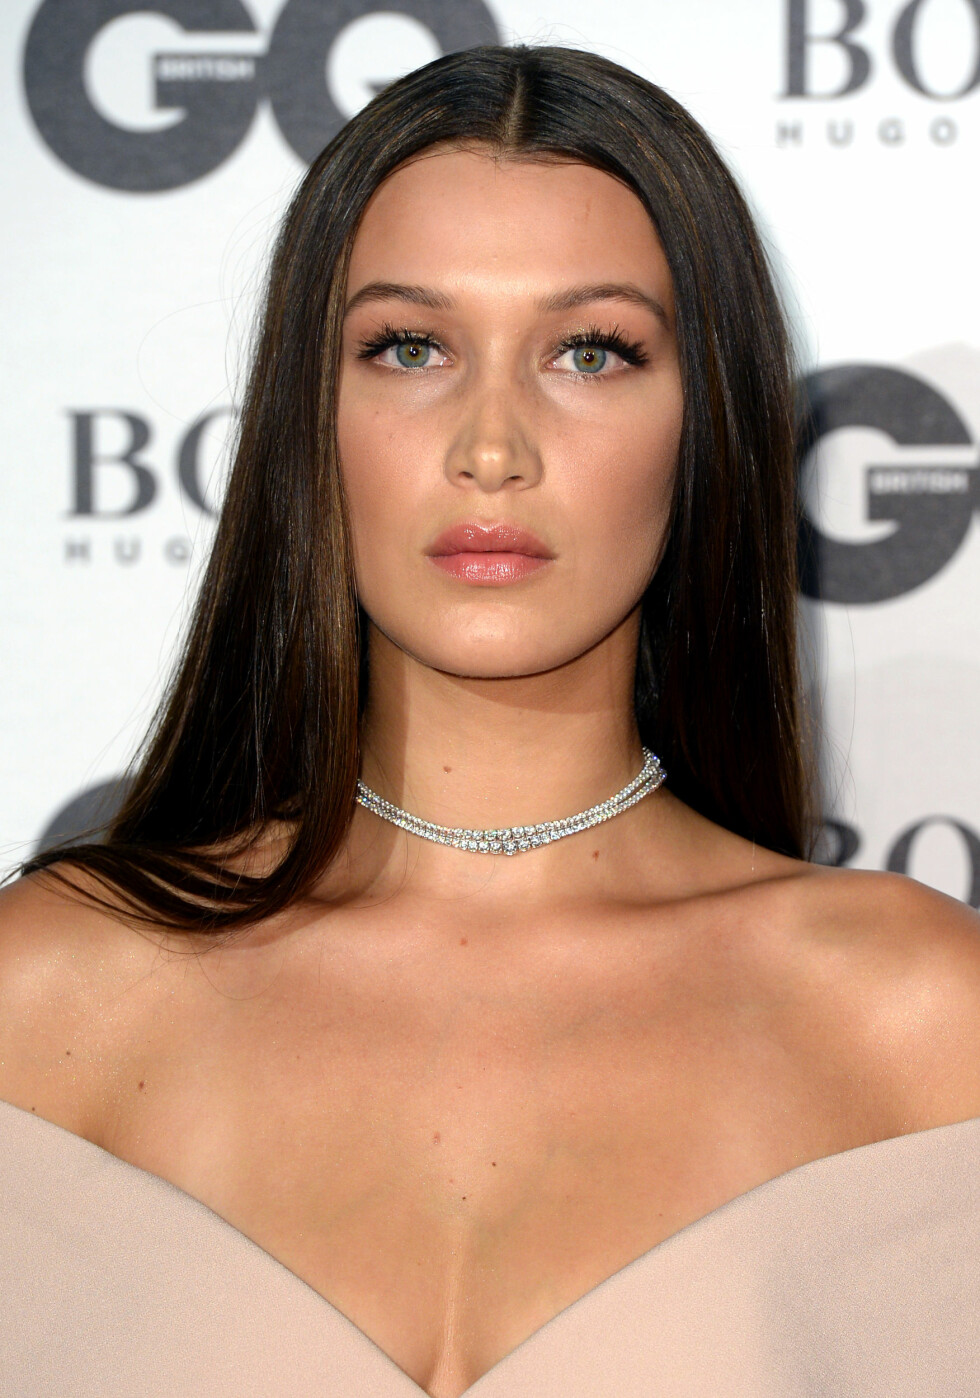 Bella Hadid (19) Foto: Pa Photos